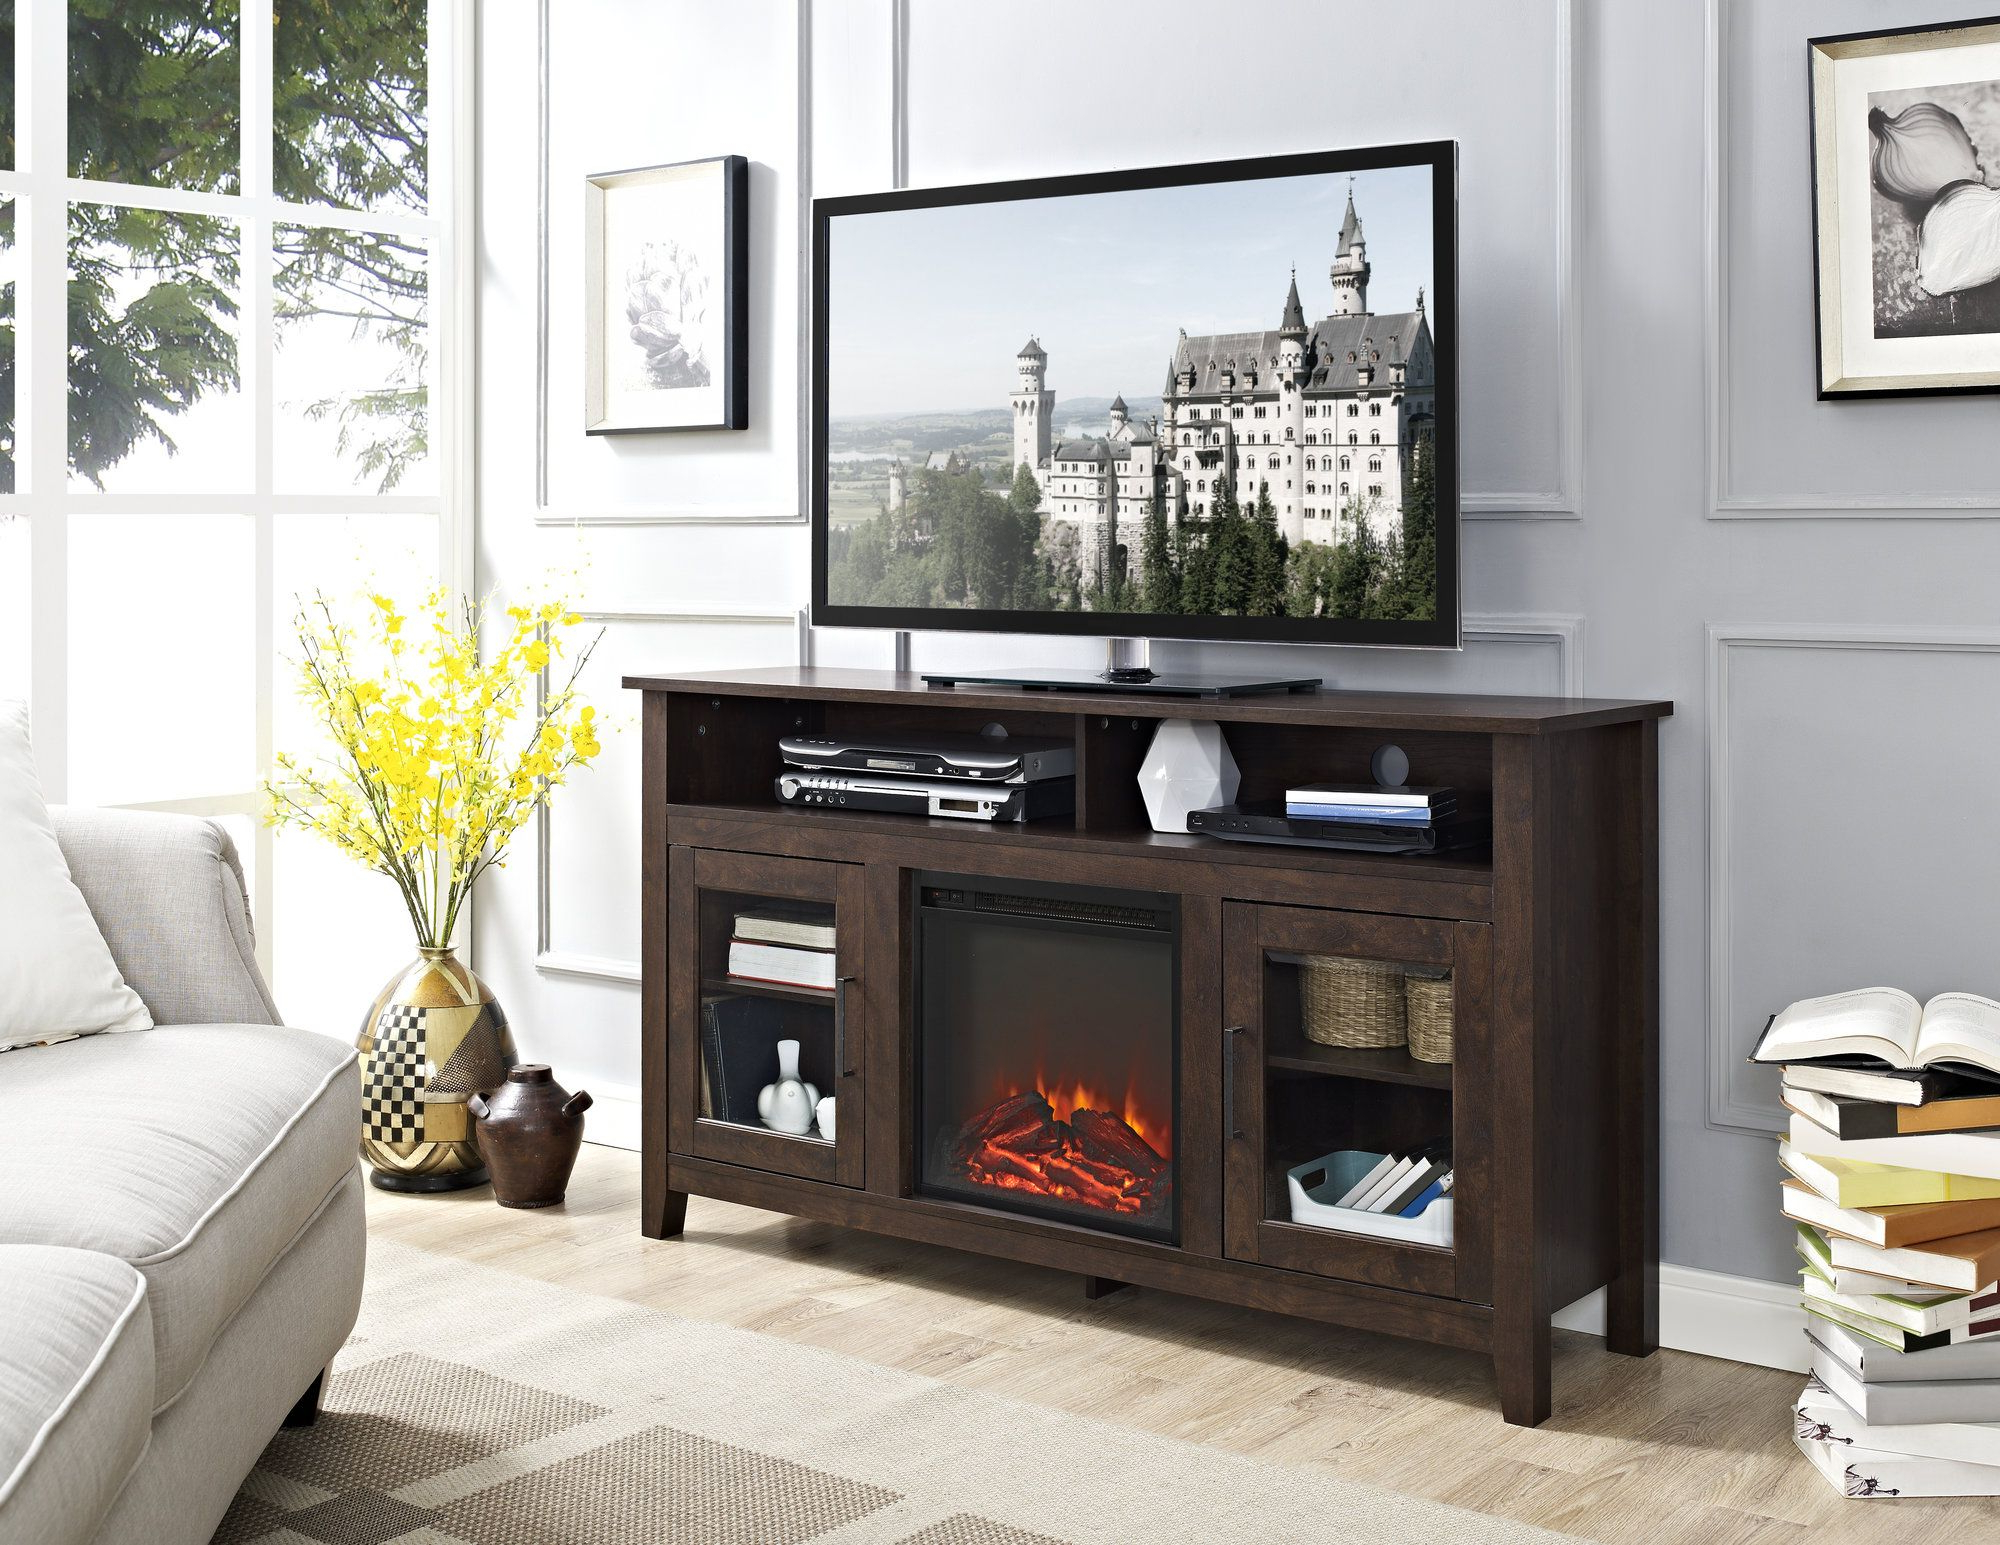 Pin On Decorating / Home Ideas With Regard To Woven Paths Barn Door Tv Stands In Multiple Finishes (View 10 of 20)